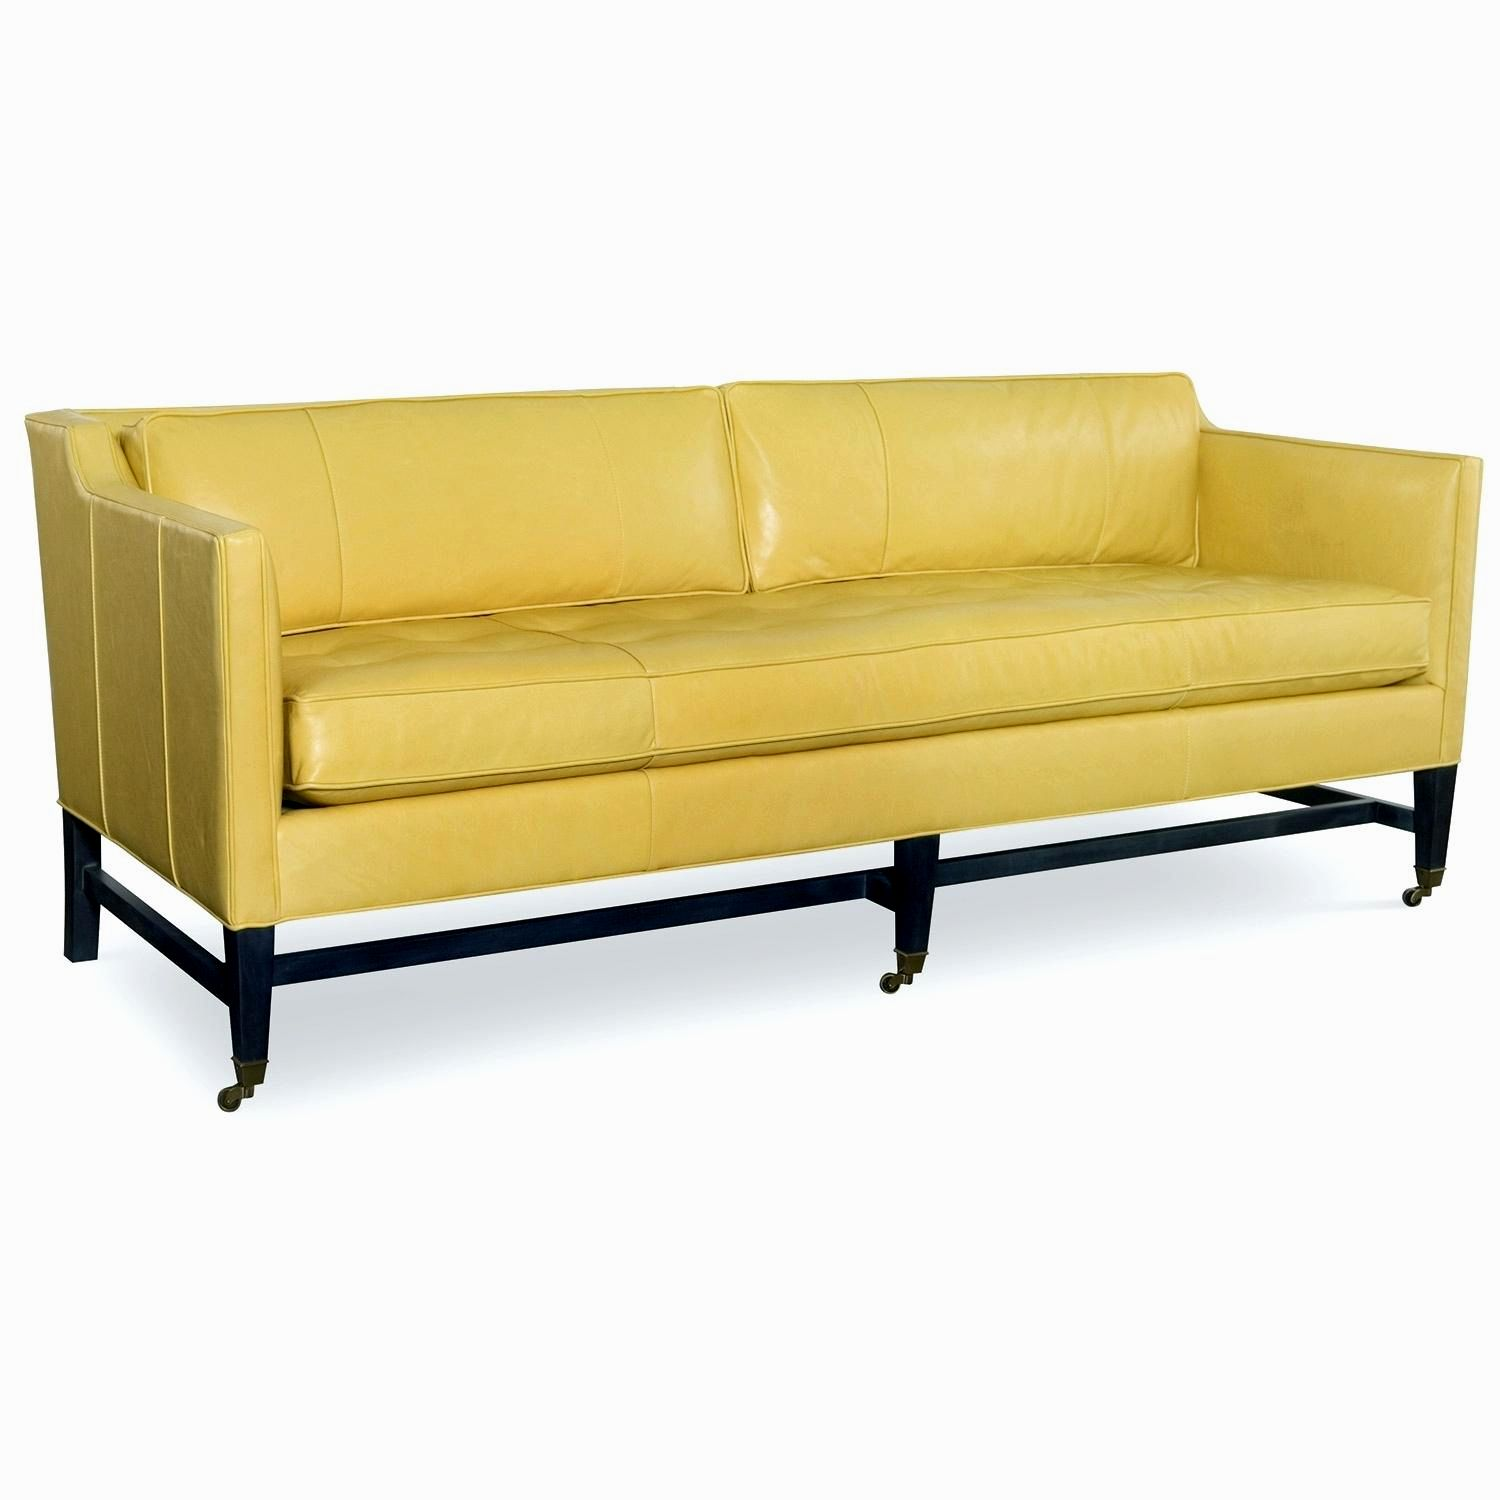 best of mitchell gold sofa ideas-Sensational Mitchell Gold sofa Photograph